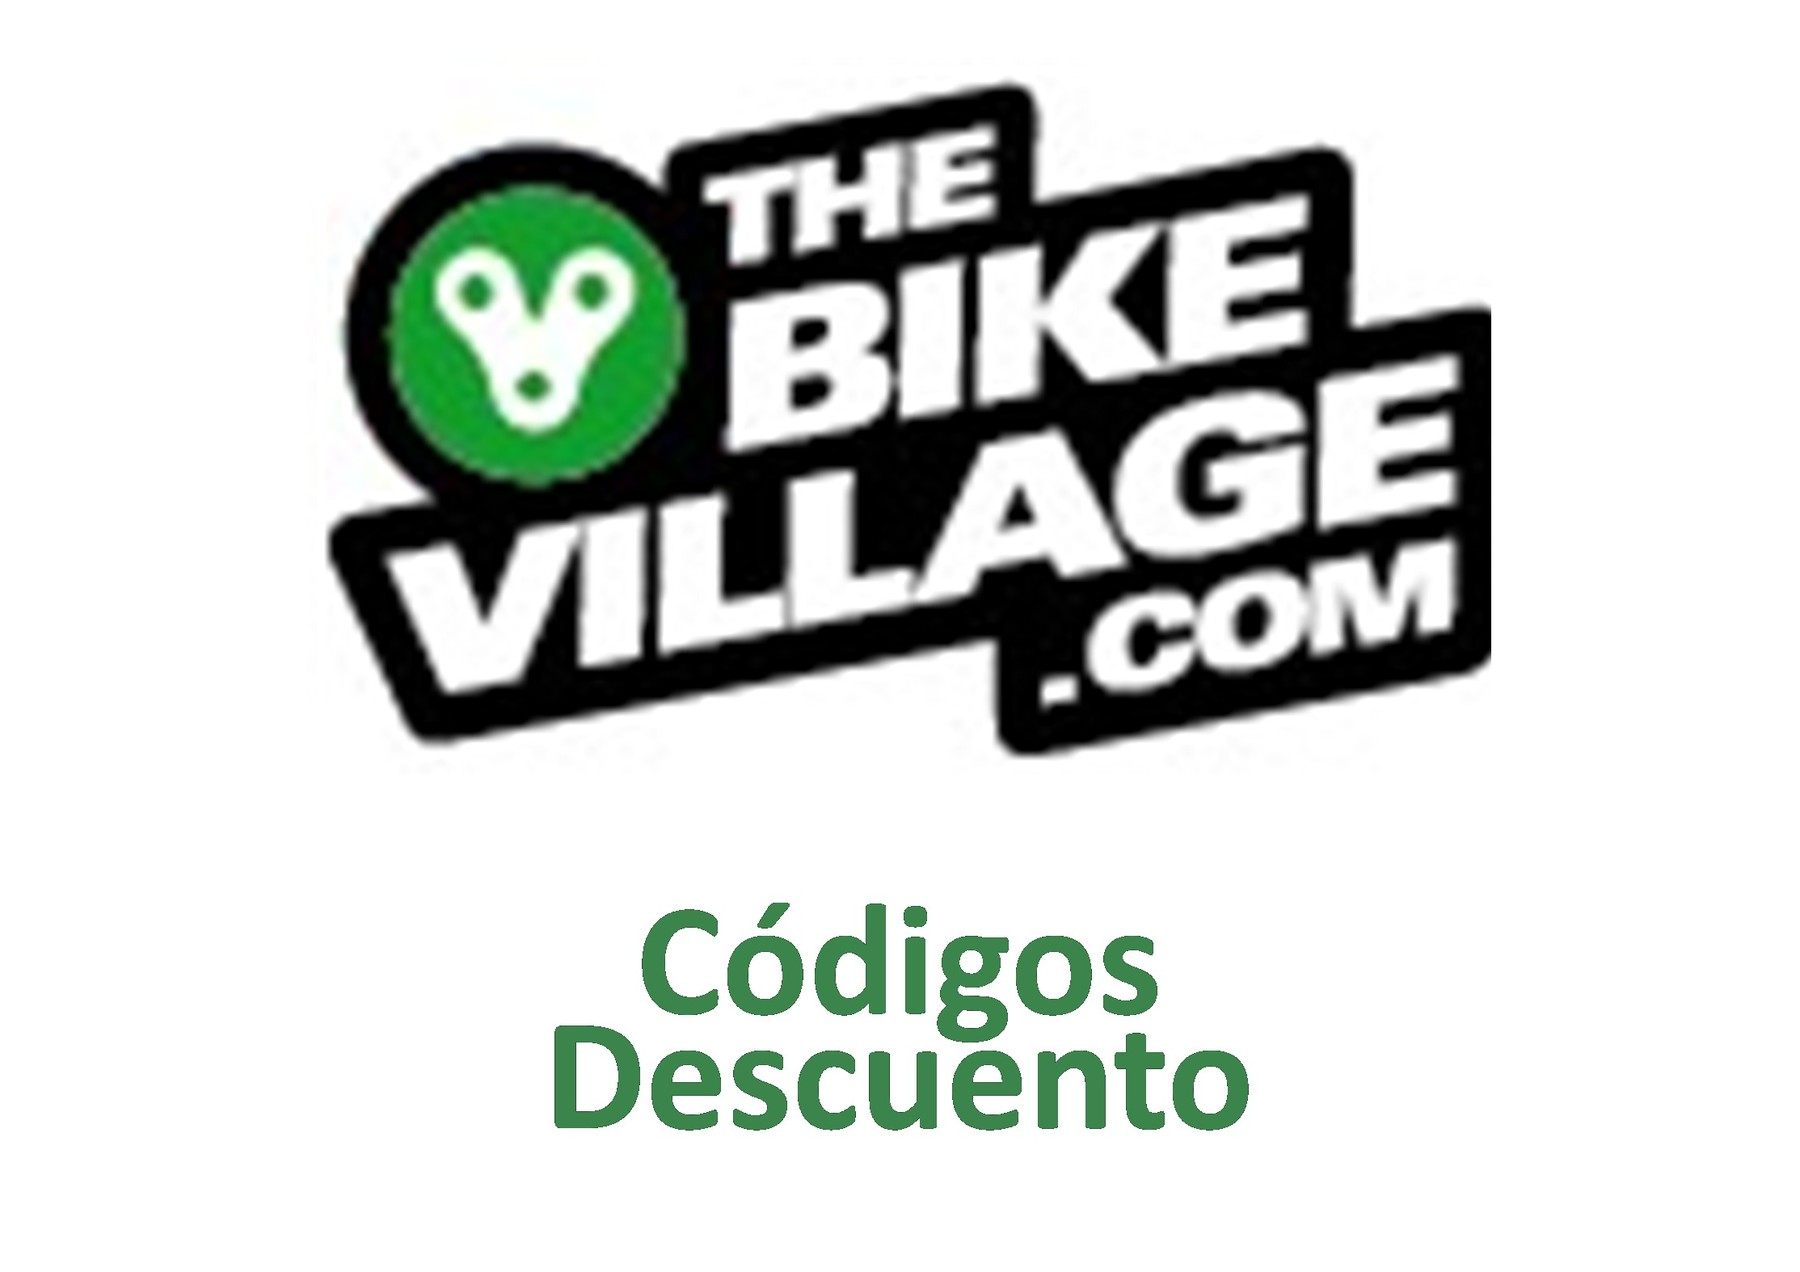 TheBikeVillage